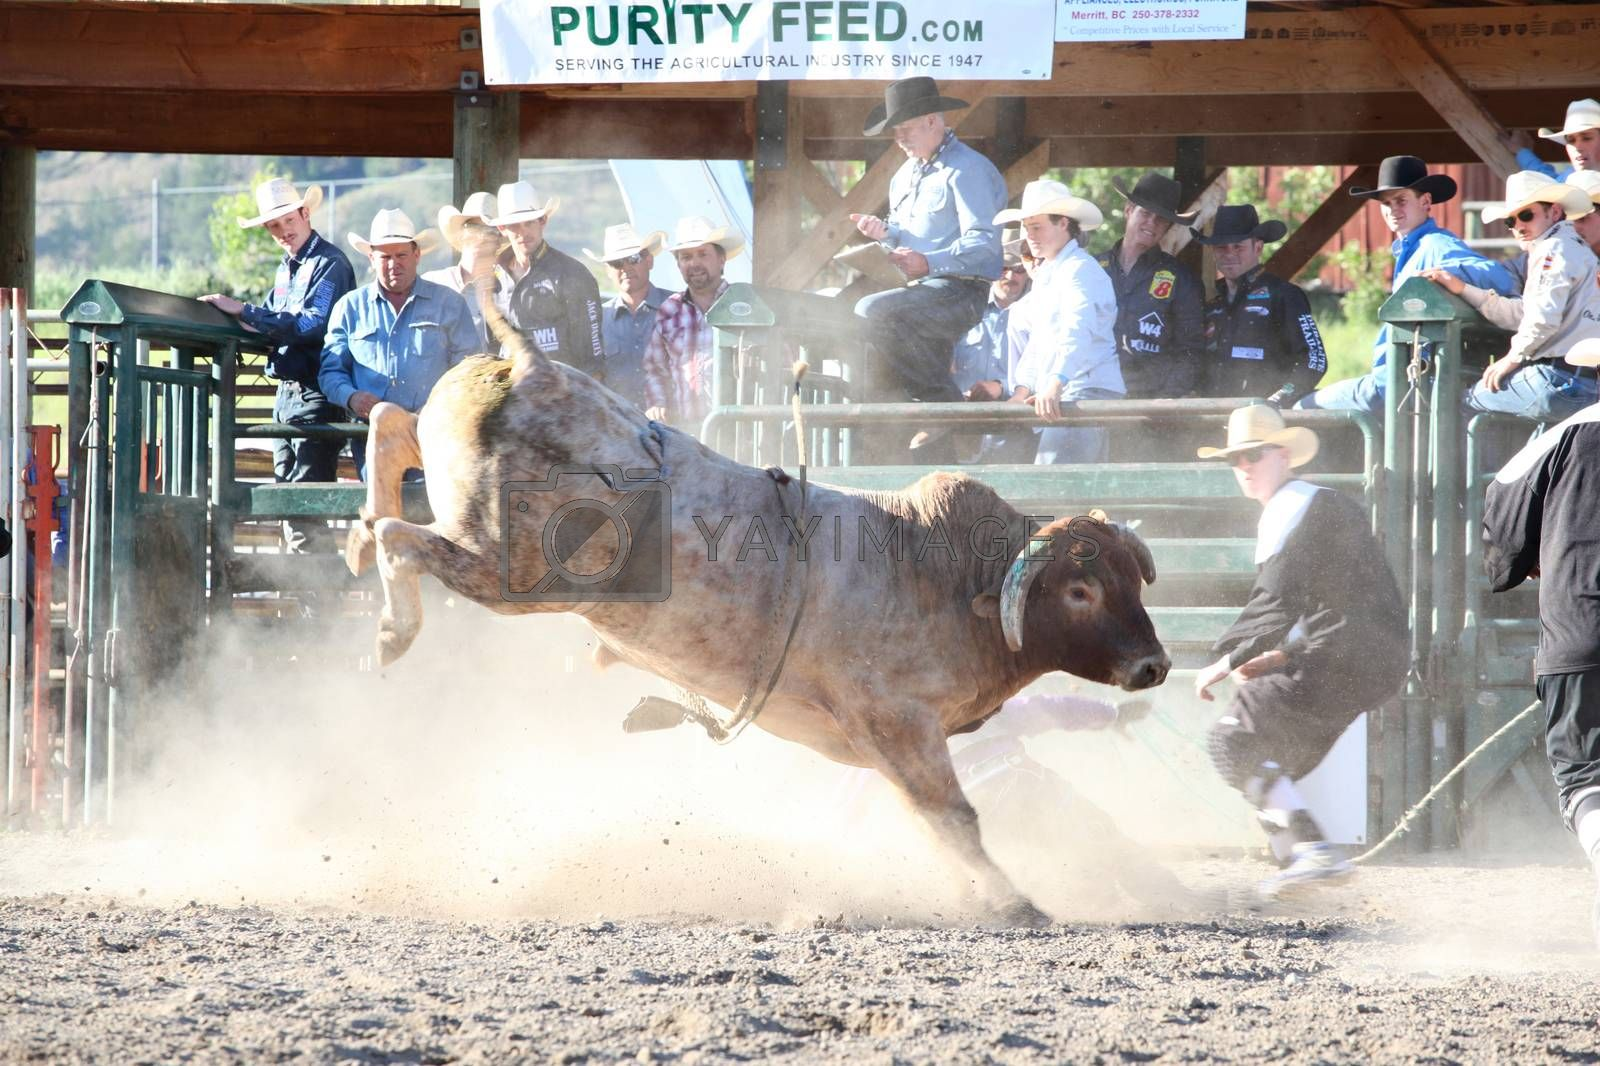 Ty Pozzobon Invitational PBR by vanell